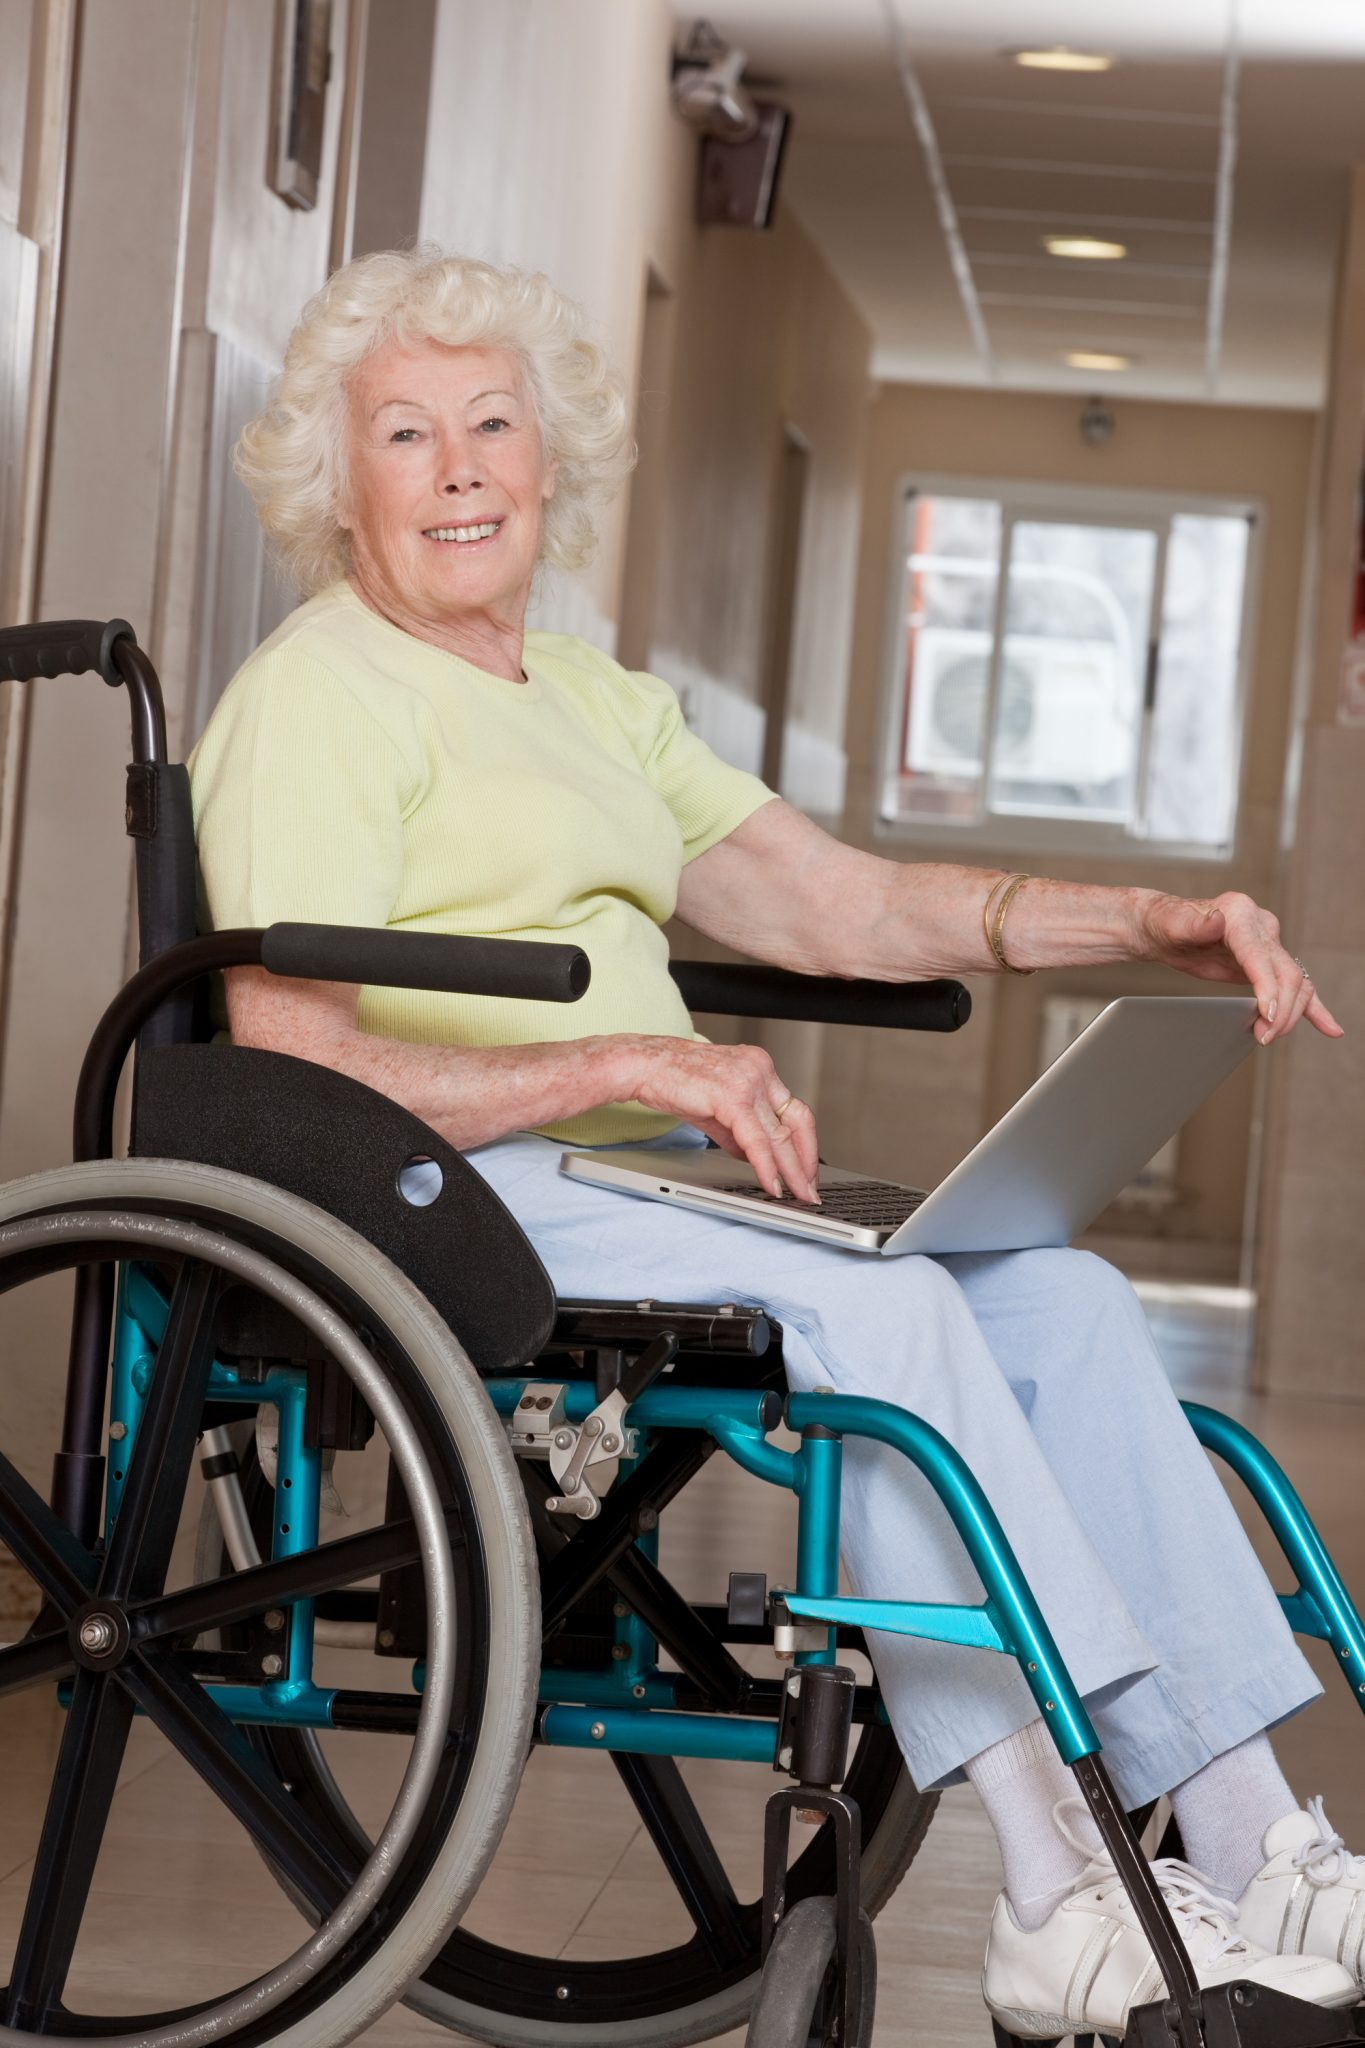 HealthSignals Launches Wi-Fi As A Service (WAAS) for $1/Day/Room for AL and Skilled Nursing